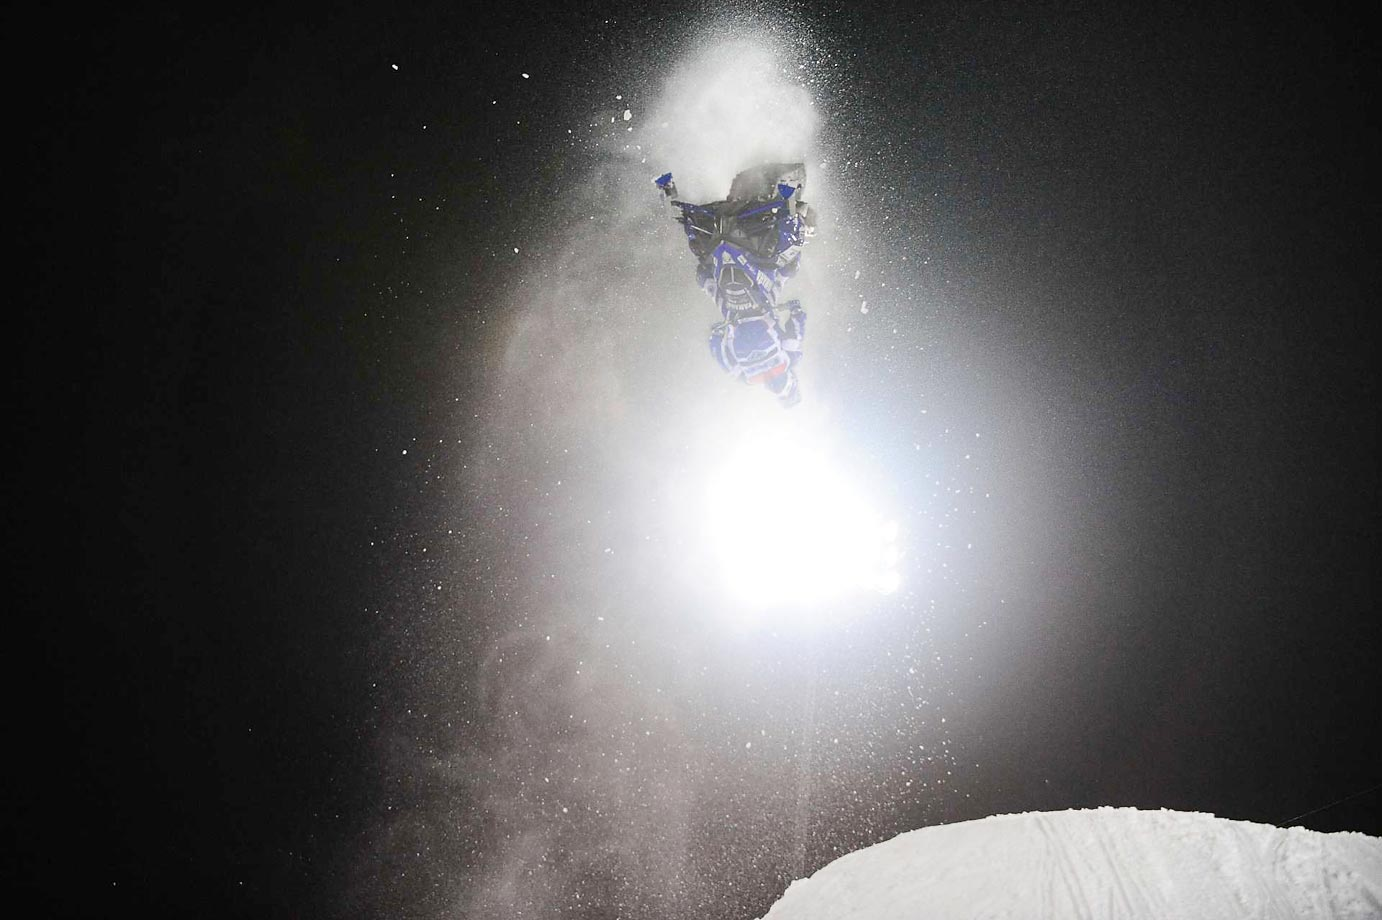 With this year's Winter X Games kicking off in Aspen, we looked back at some of our favorite photos through the years.